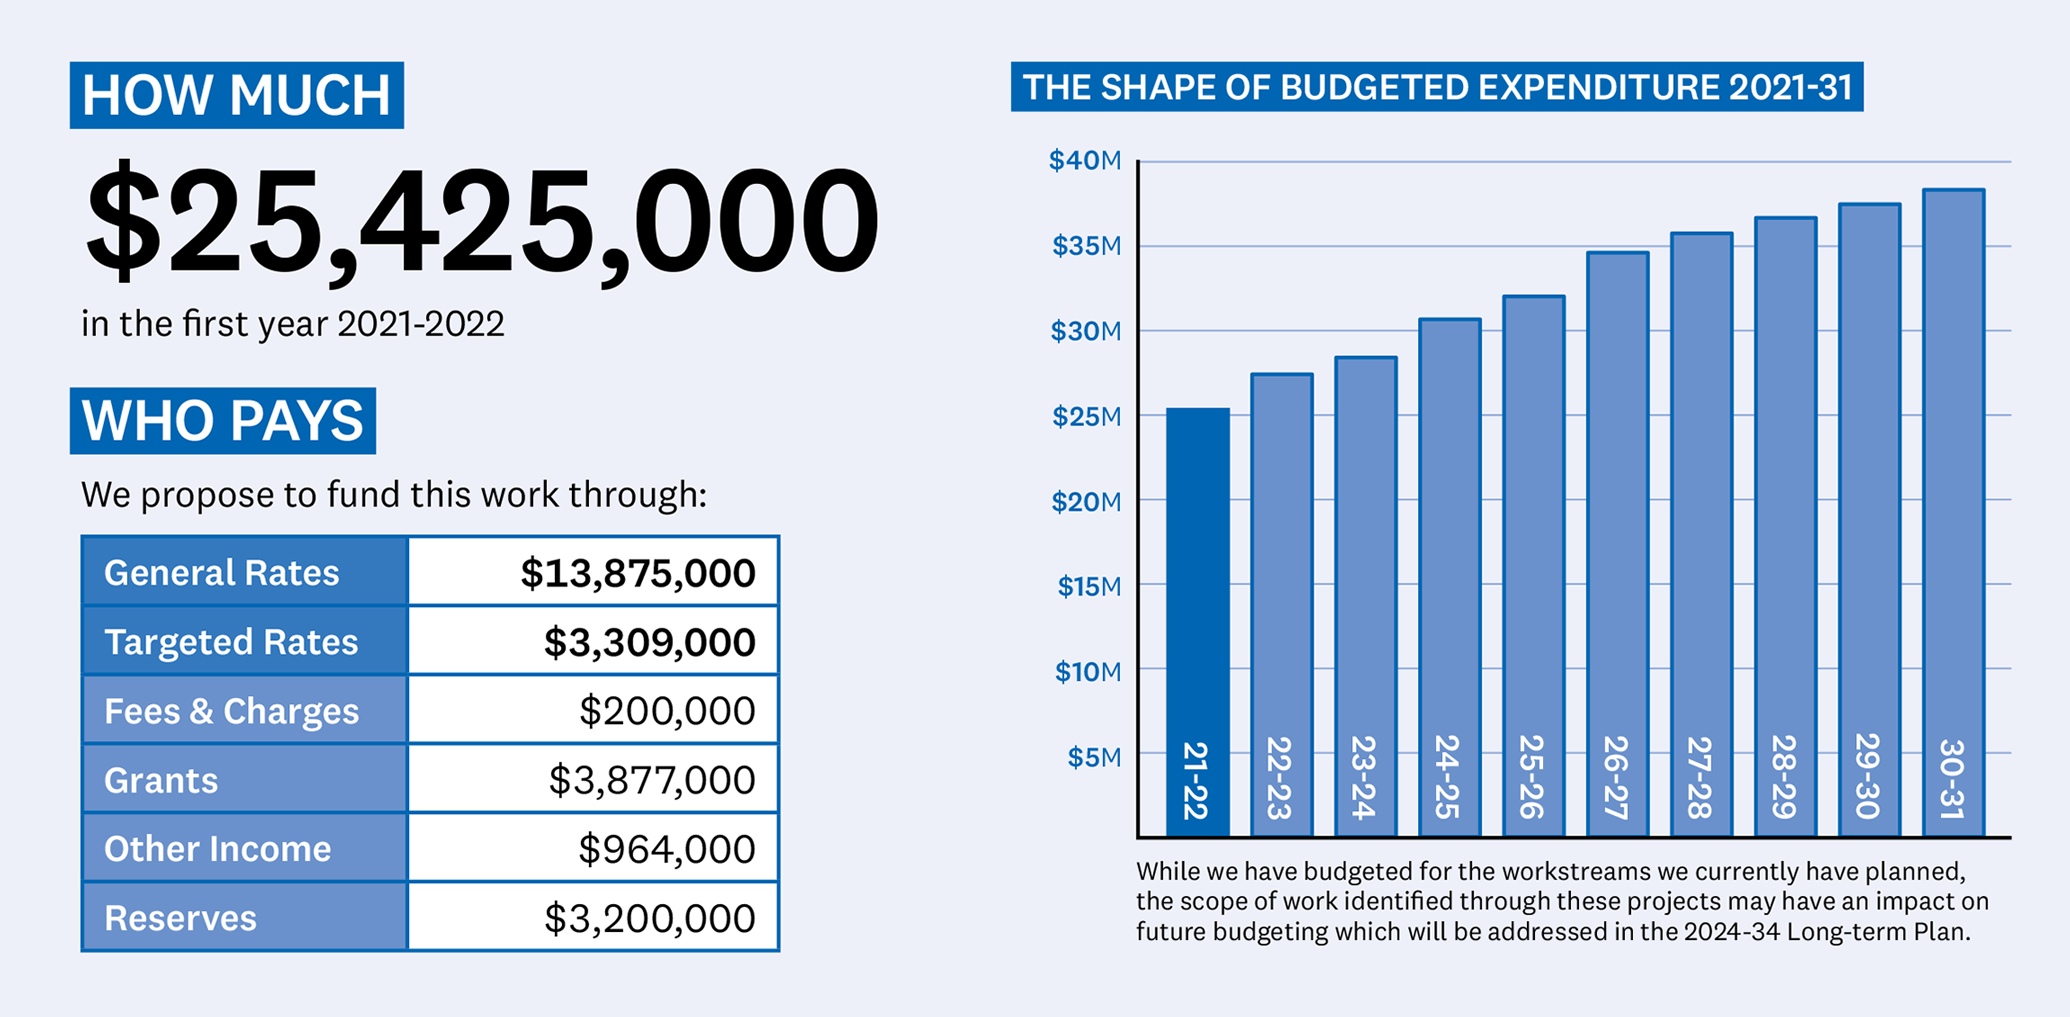 ENVIRONMENT TABLE SHOWING WHO PAYS IN YEAR 1 In the first year of the Long-term Plan it is expected our work on the environment will cost $25,425,000. Funds for this work programme are split between the following: General rates with $13,875,000 Targeted rates with $3,309,000 Fees and charges with $200,000 Grants with $3,877,000 Other income with $964,000 Reserves with $3,200,000 ENVIRONMENT BUDGETED EXPENDITURE GRAPH This graph show expenditure in this area increasing over the next 10 years. Year 1 spend is $25,425,000. Year 2 spend is $27,512,000. Year 3 spend is $28,501,000. Year 4 spend is $30,756,000. Year 5 spend is $32,107,000. Year 6 spend is $34,687,000. Year 7 spend is $35,829,000. Year 8 spend is $36,743,000. Year 9 spend is $37,548,000. Year 10 spend is $38,399,000.